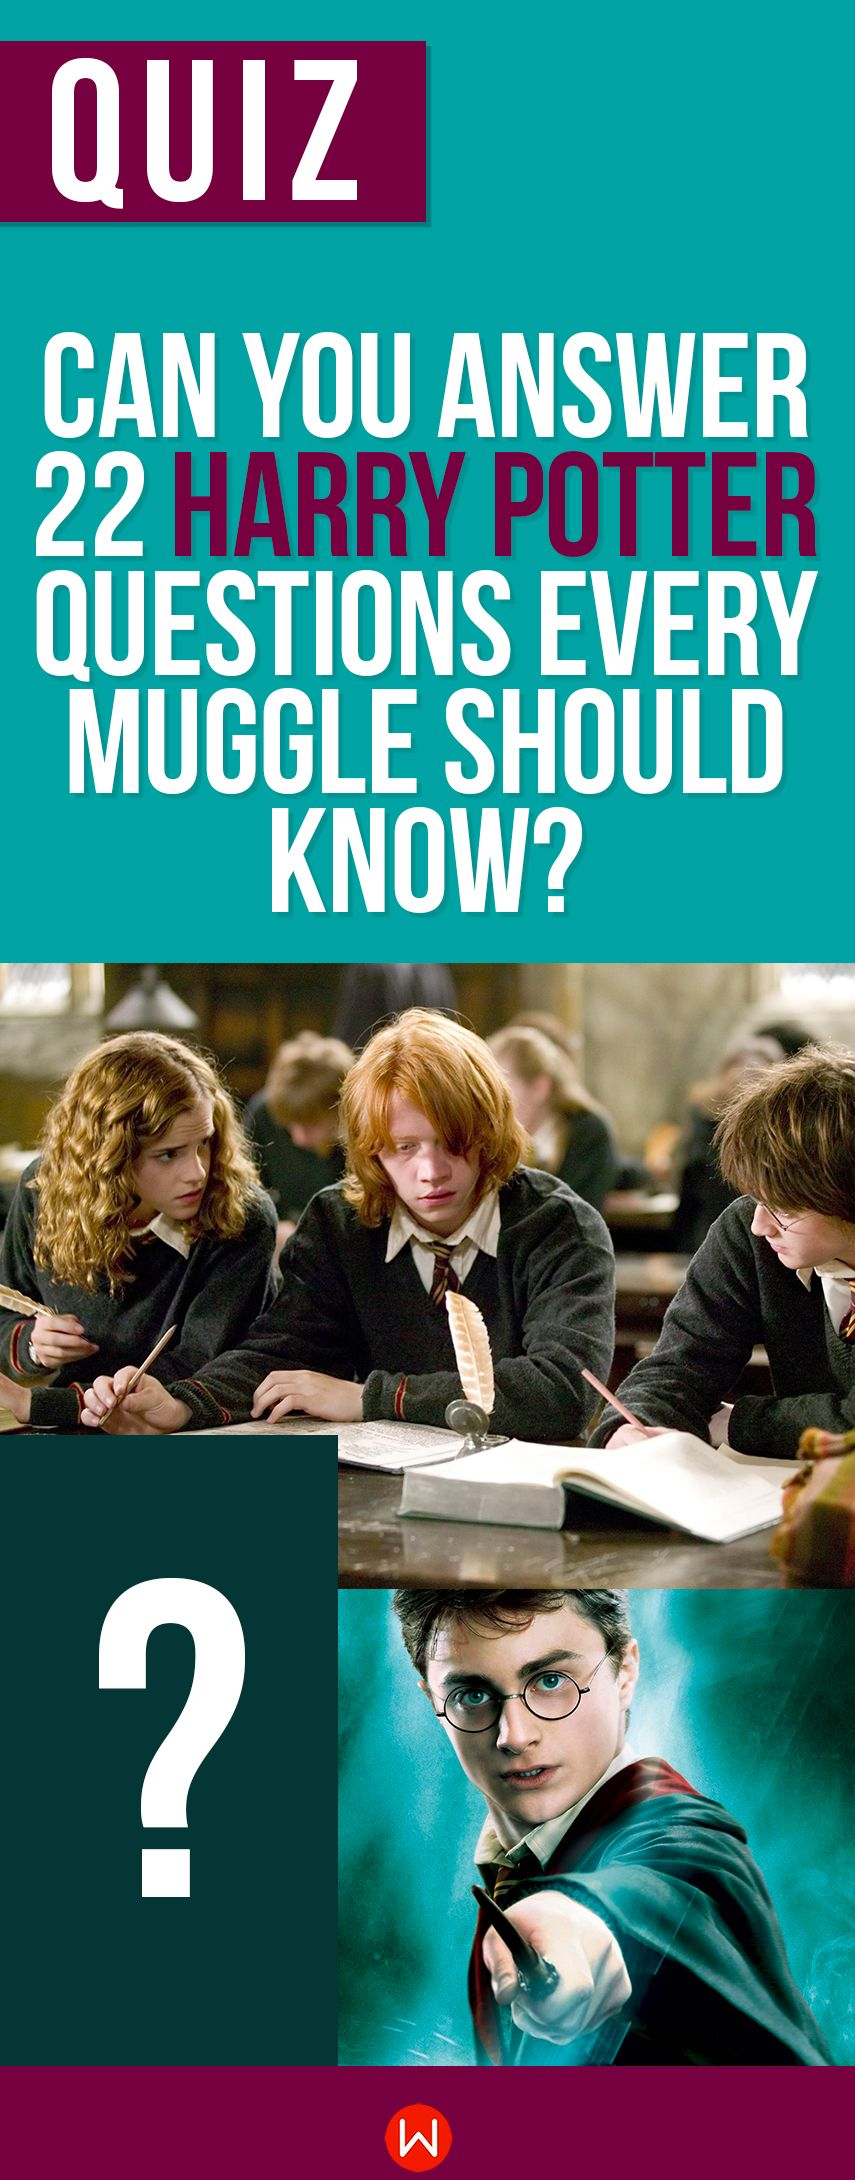 Quiz Can You Answer 22 Harry Potter Questions Every Muggle Should